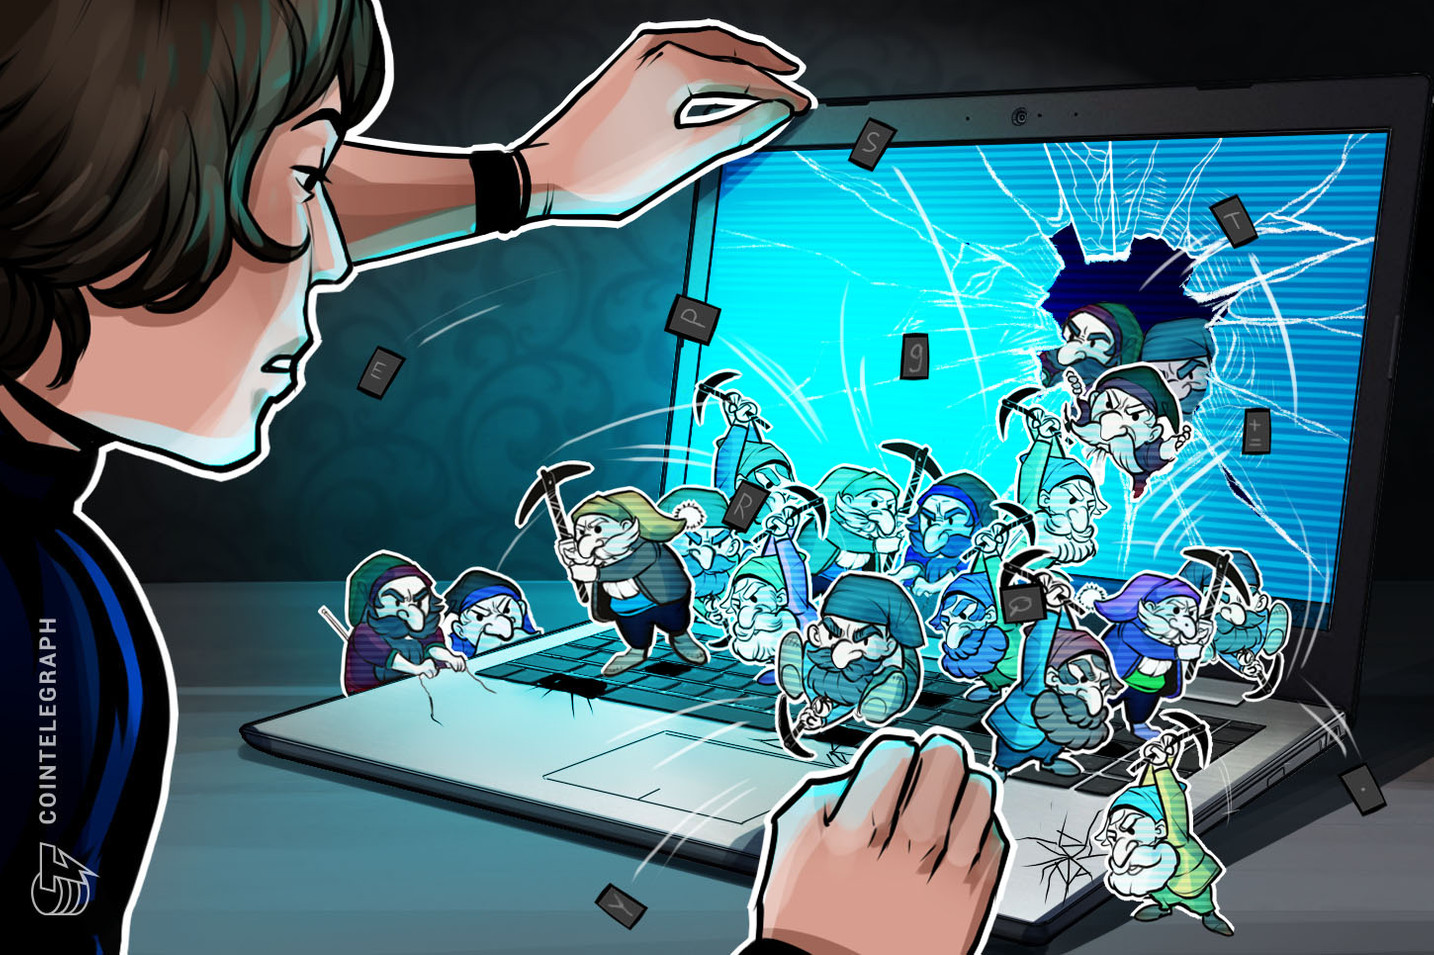 Researchers Say 50,000 Servers Worldwide Infected With Privacy Coin Cryptojacking Malware